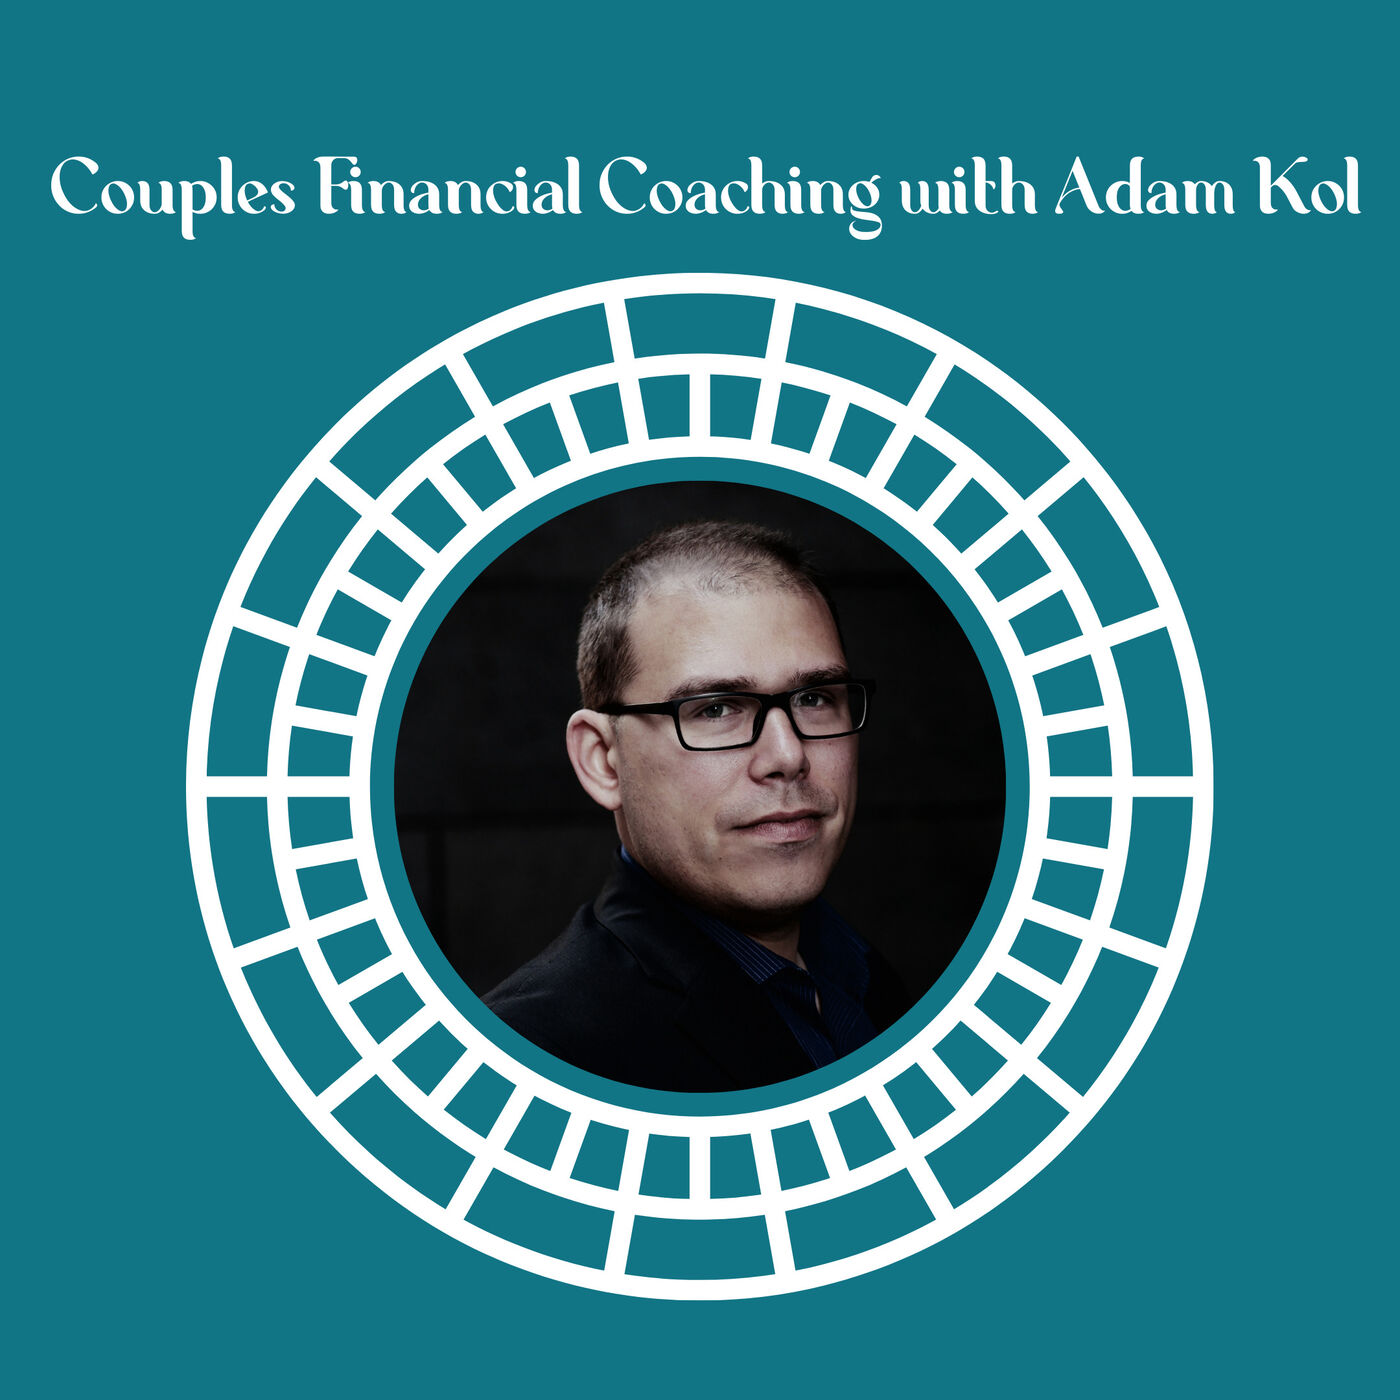 Couples Financial Coaching with Adam Kol - How to Talk Money with Your Partner